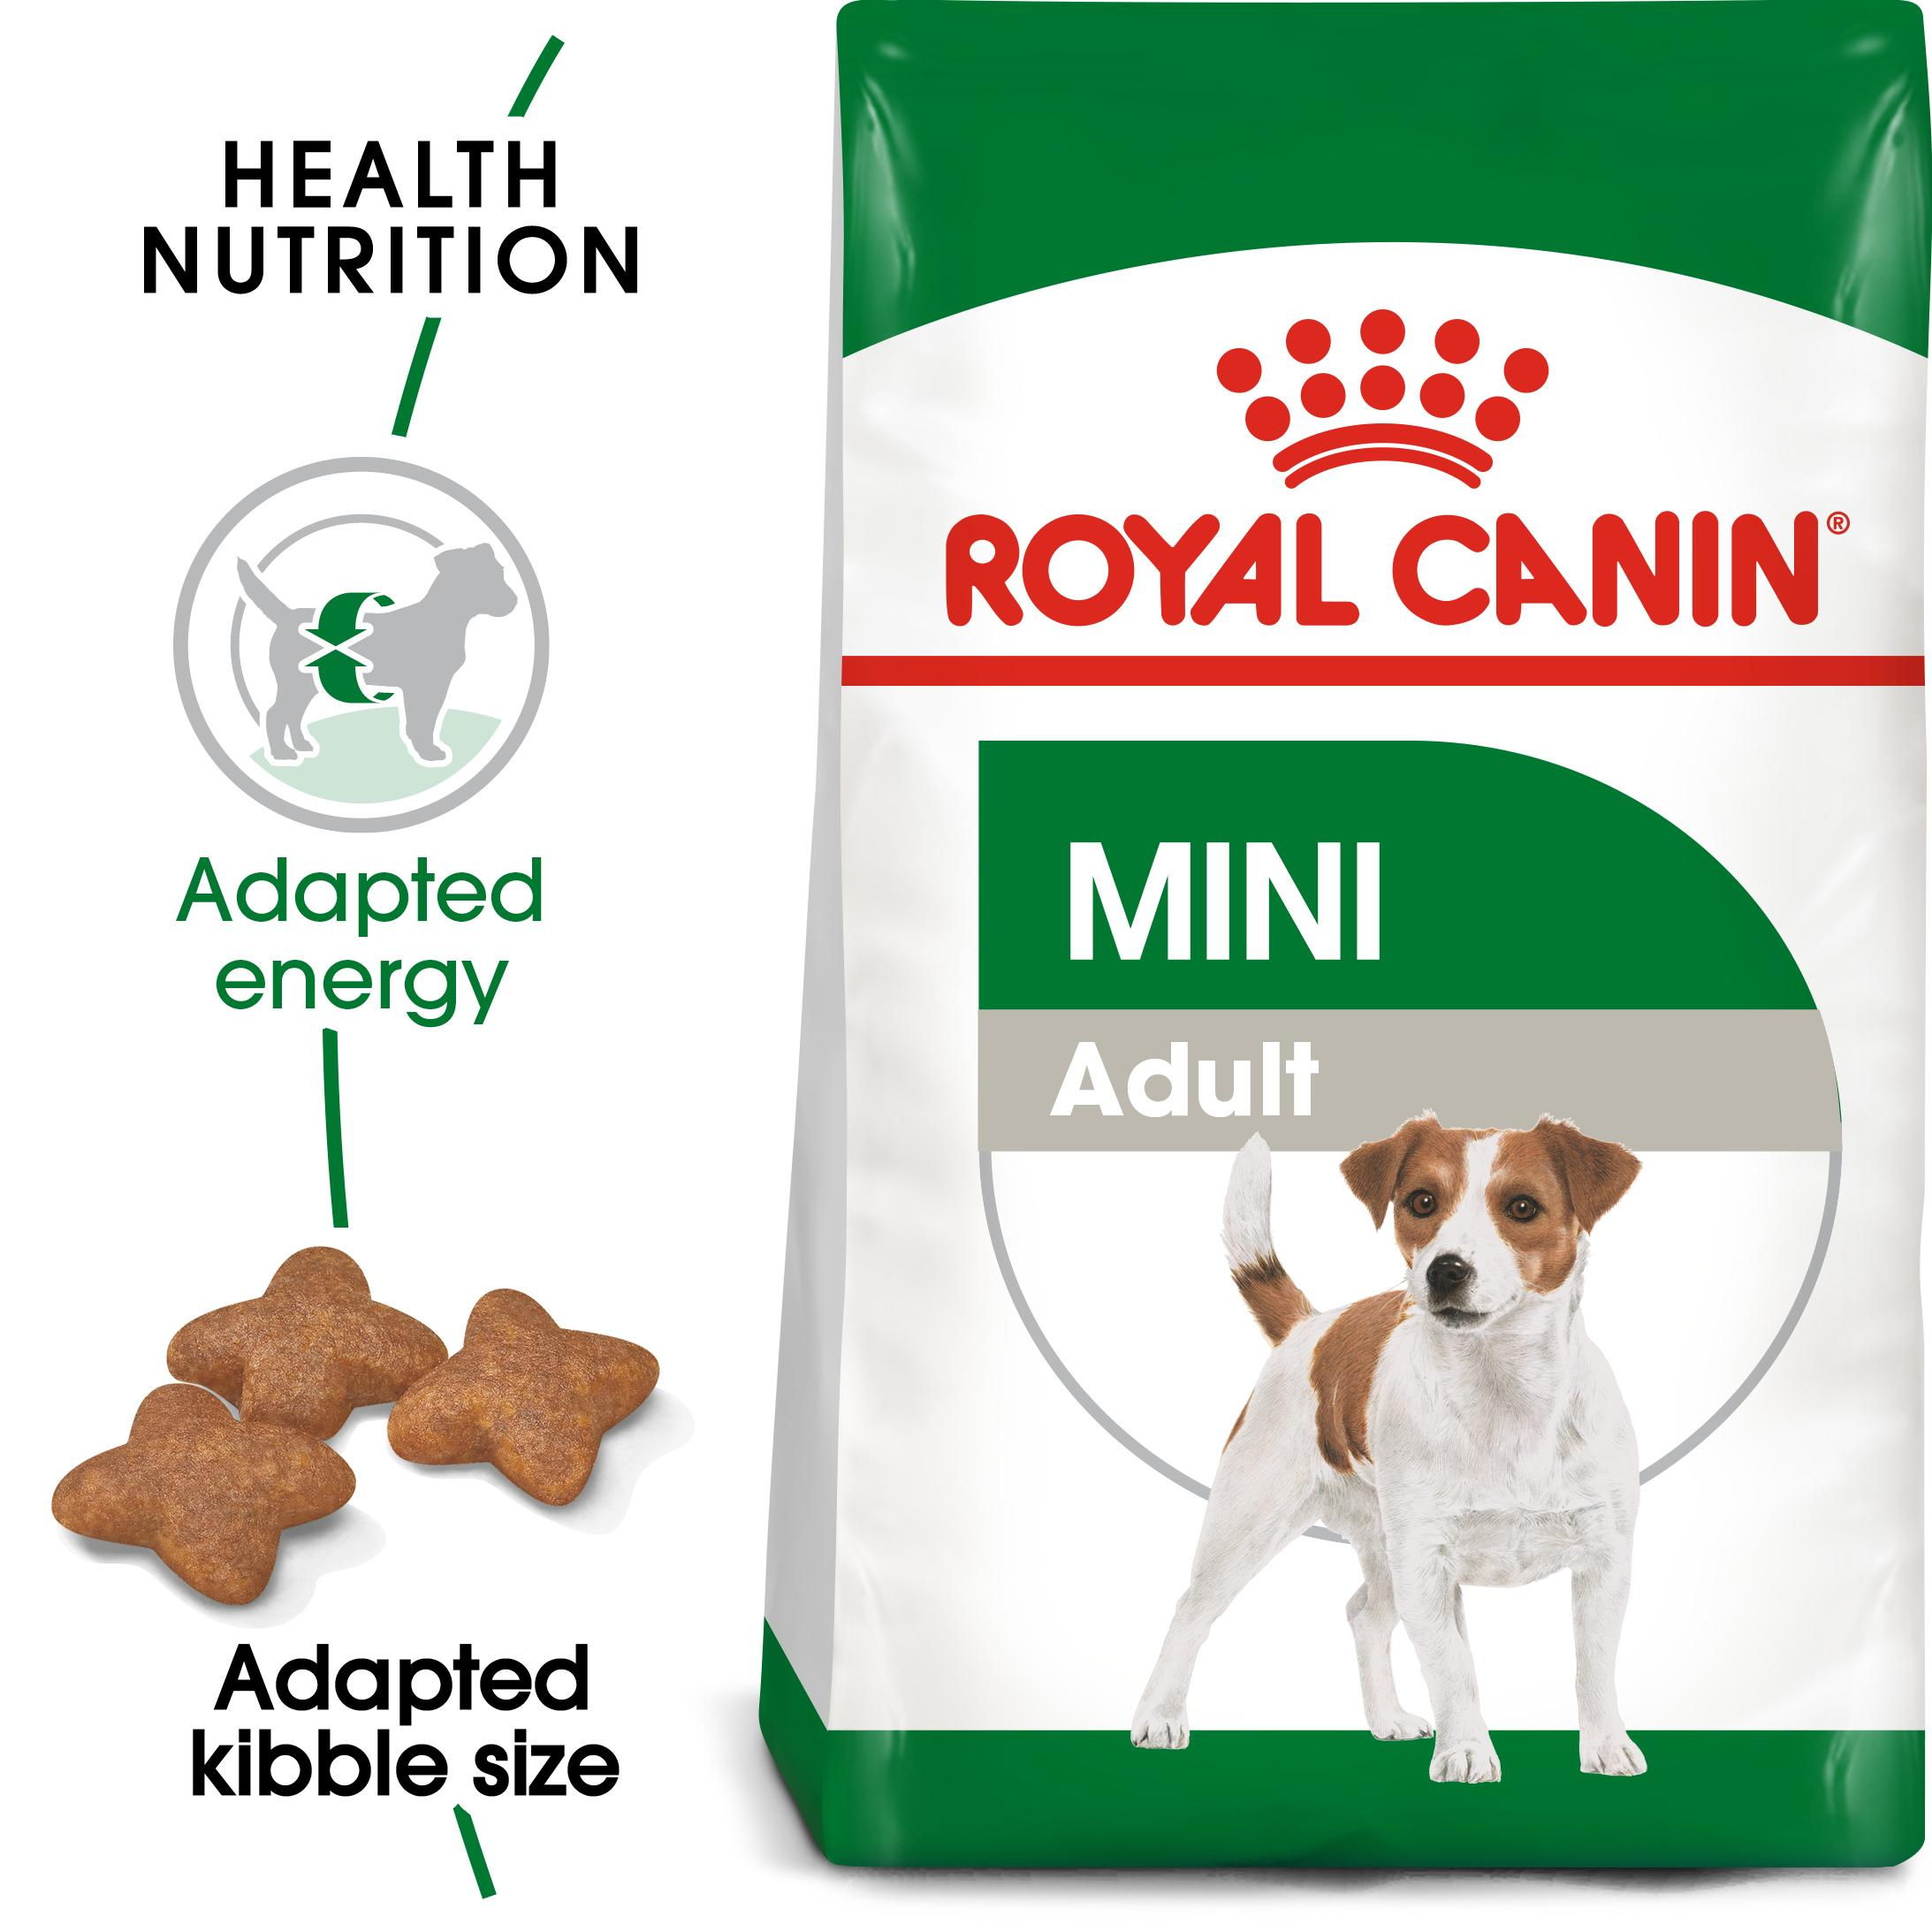 ROYAL CANIN® Mini Adult 8kg